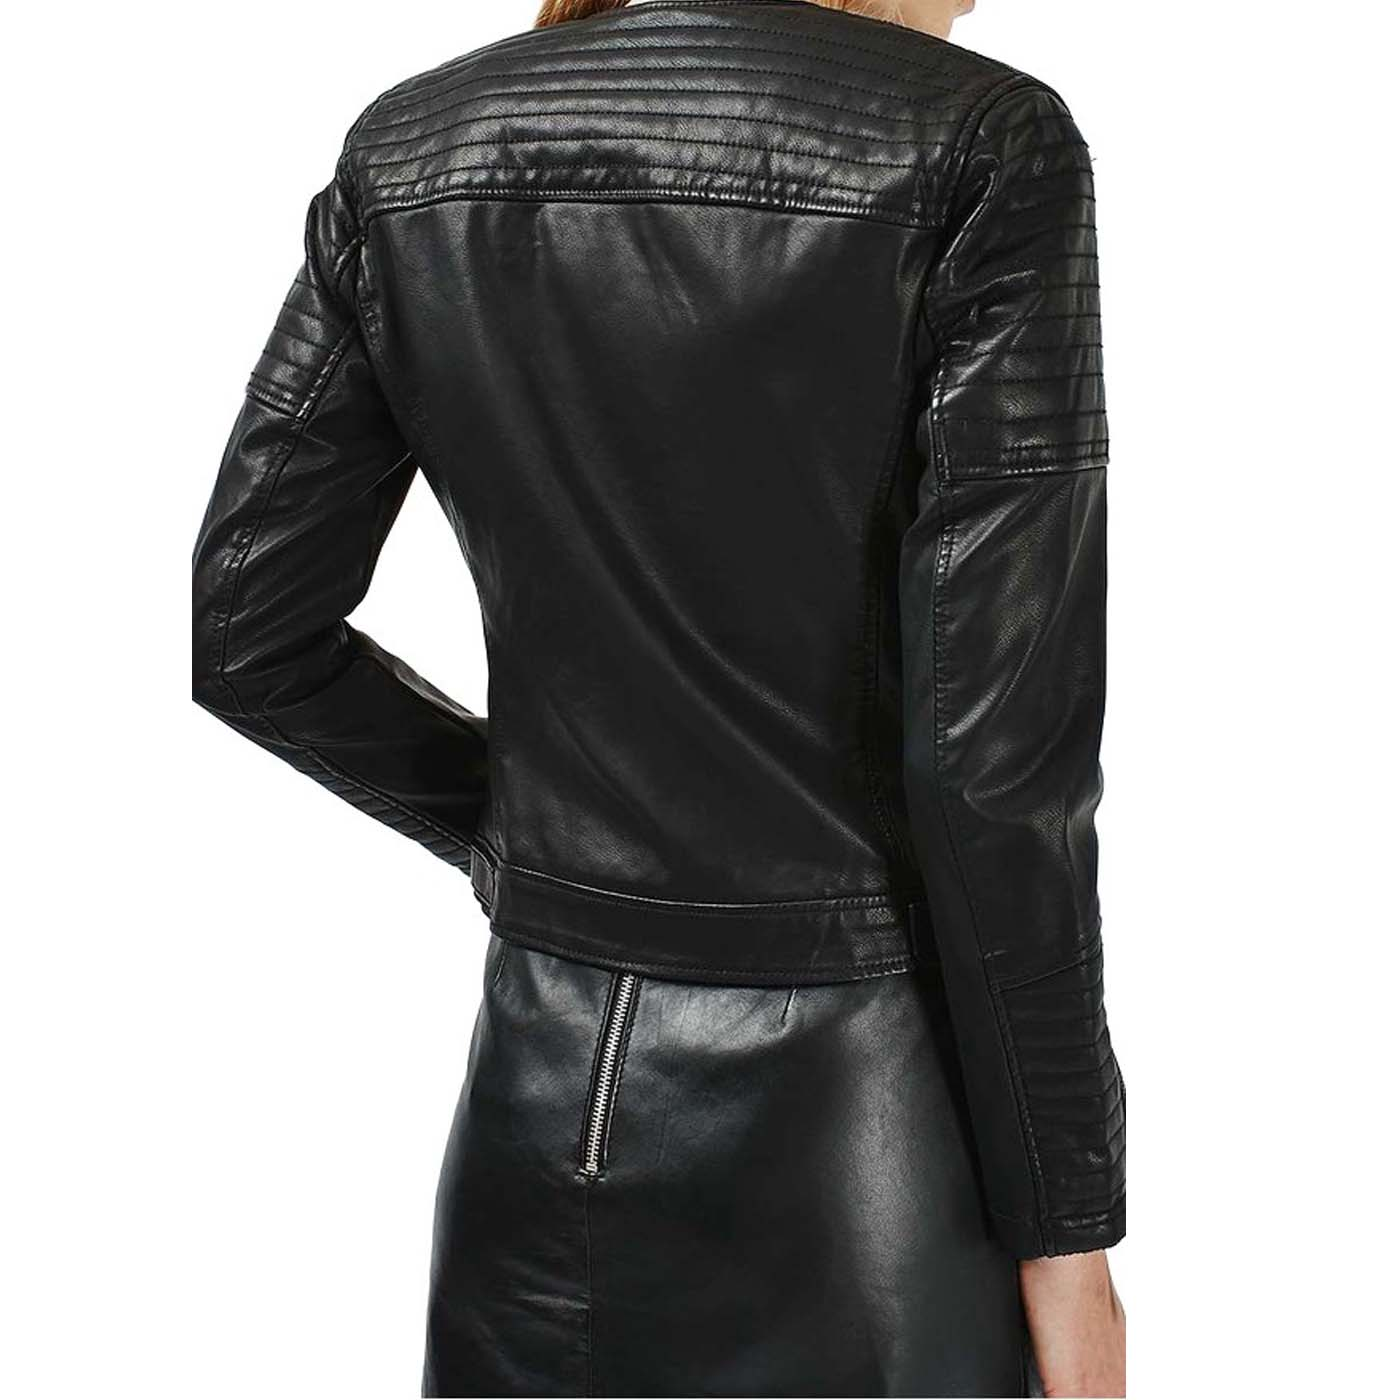 Leather motorcycle jackets for women fashion 5